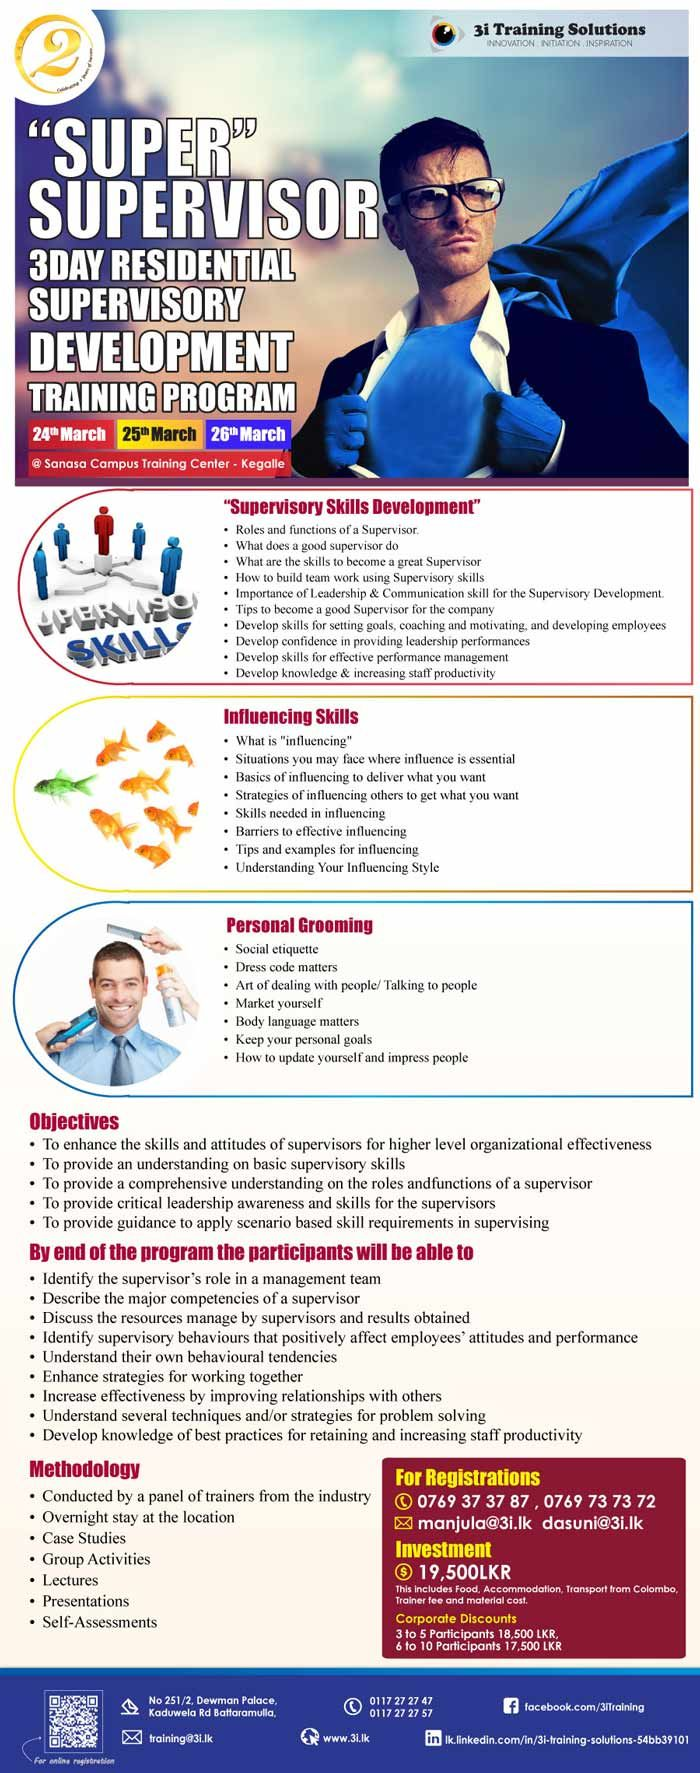 best ideas about supervisor training business 17 best ideas about supervisor training business management management tips and leadership development